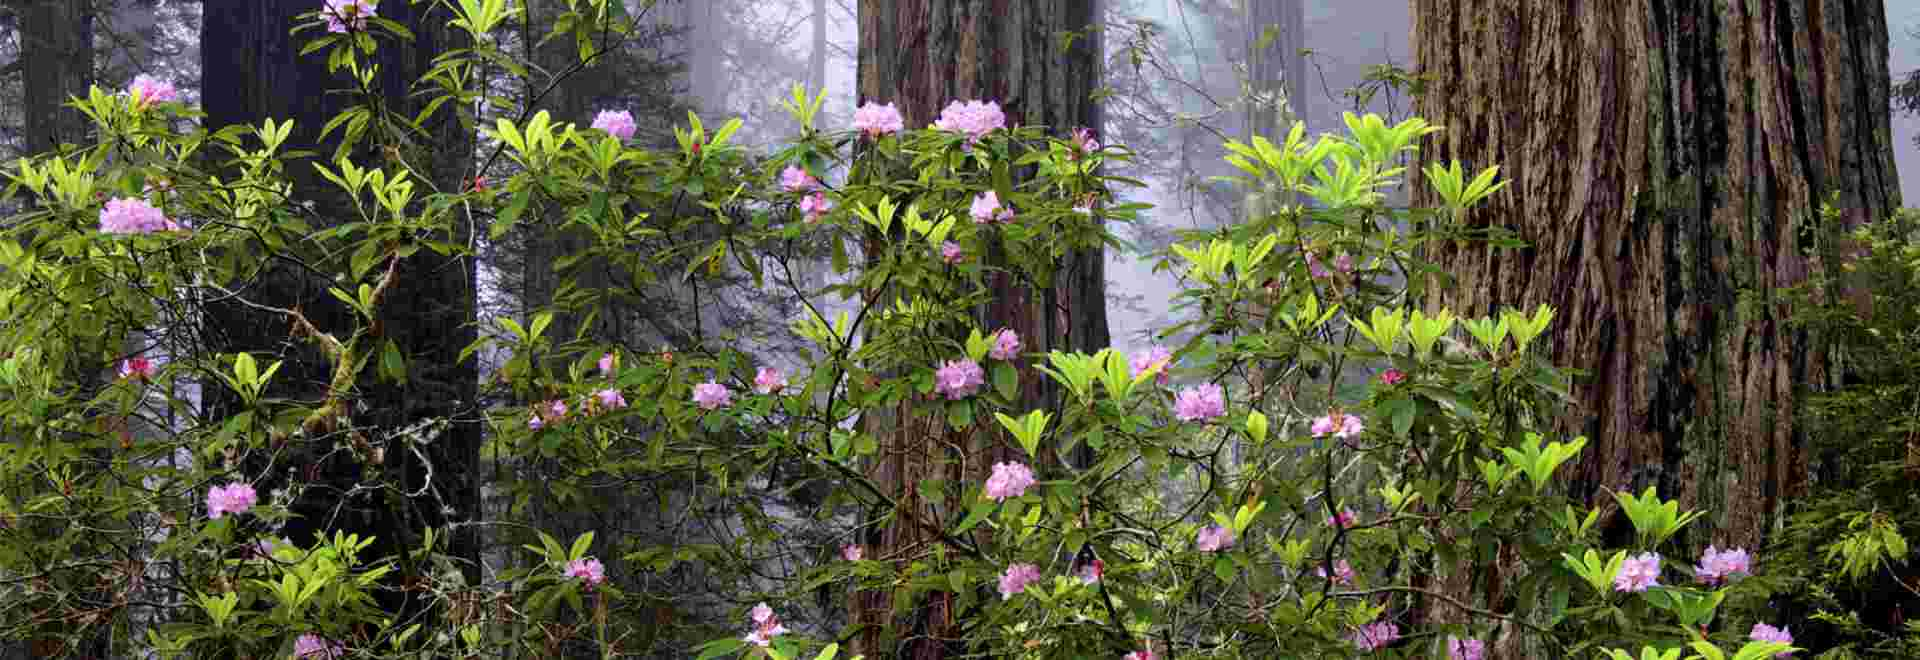 Rhododendrons at Jedediah Smith Redwoods State Park